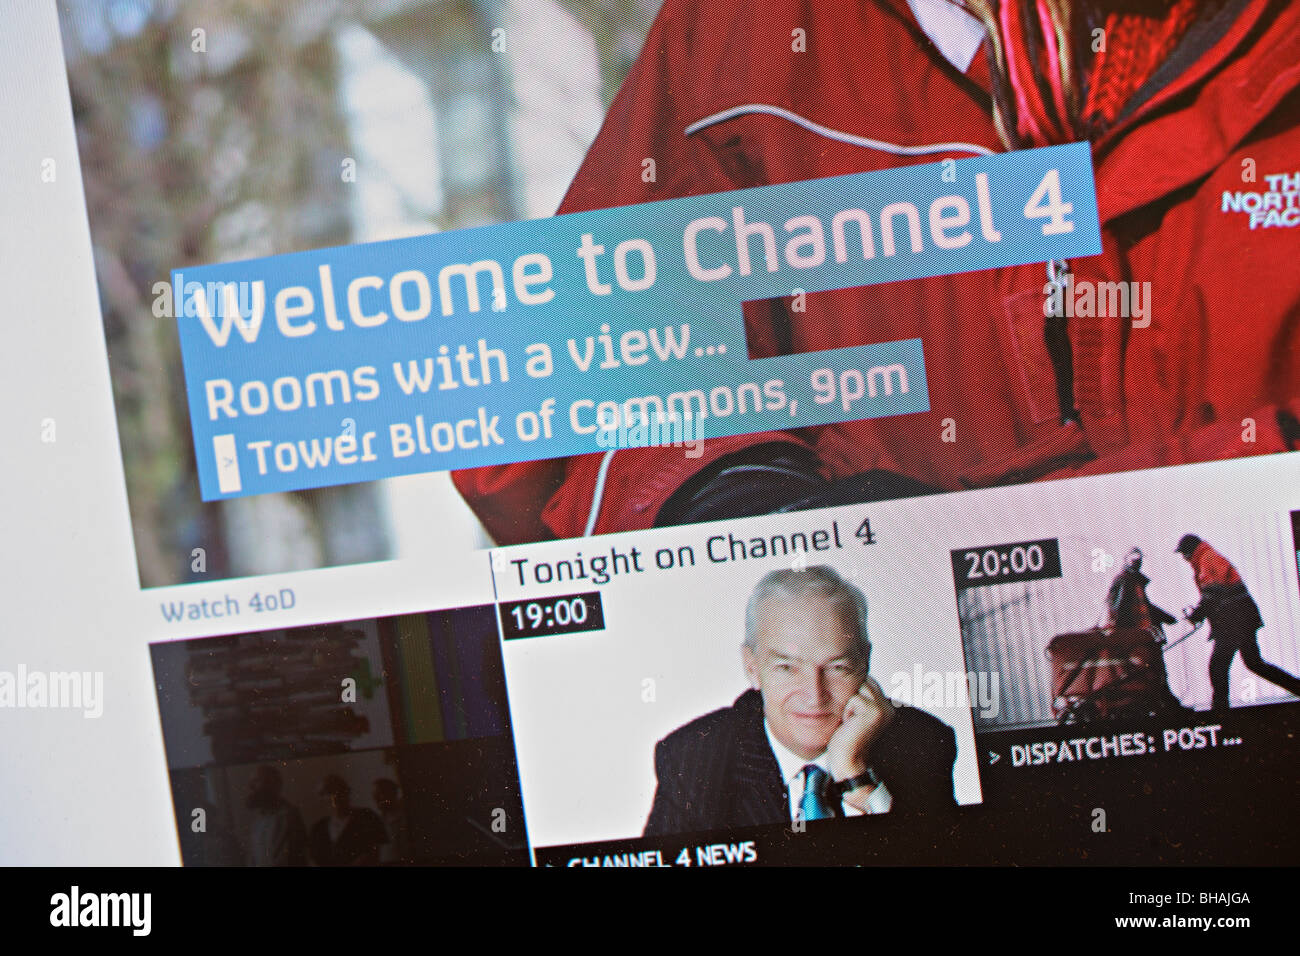 Channel 4 television homepage screenshot - Stock Image